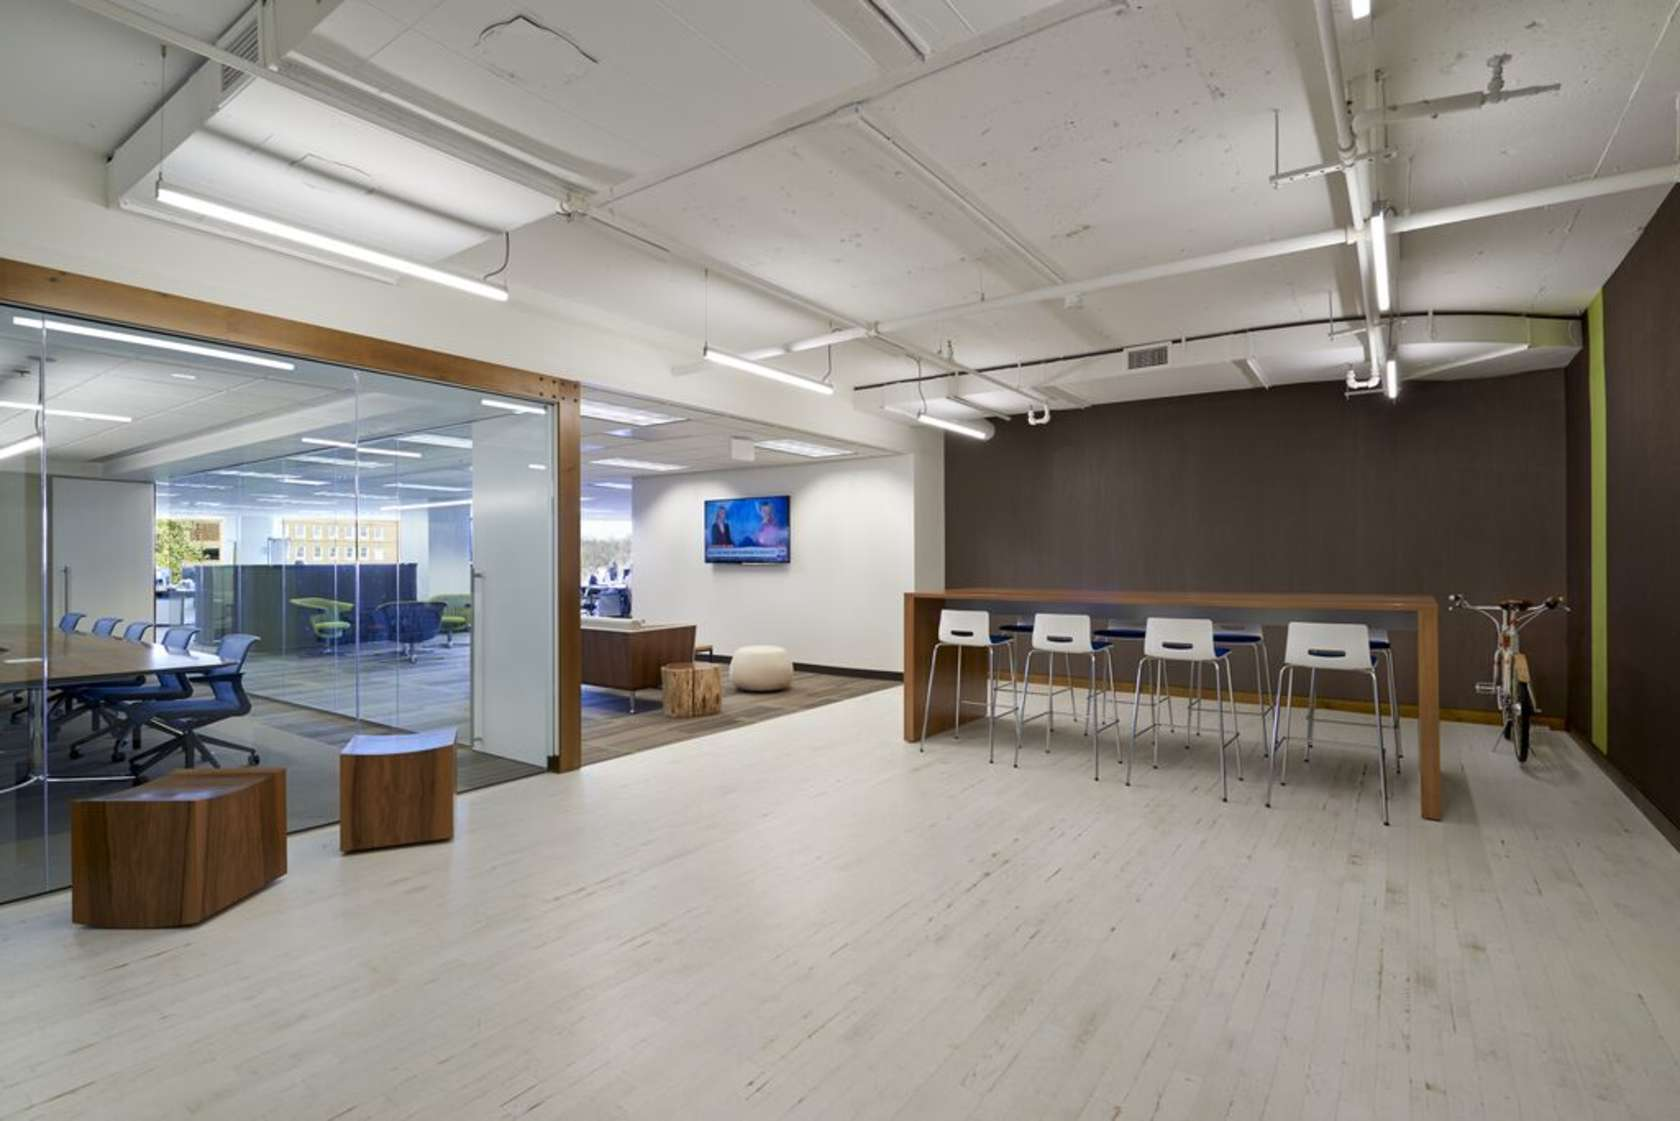 CleanChoice Energy's office space in Washington DC